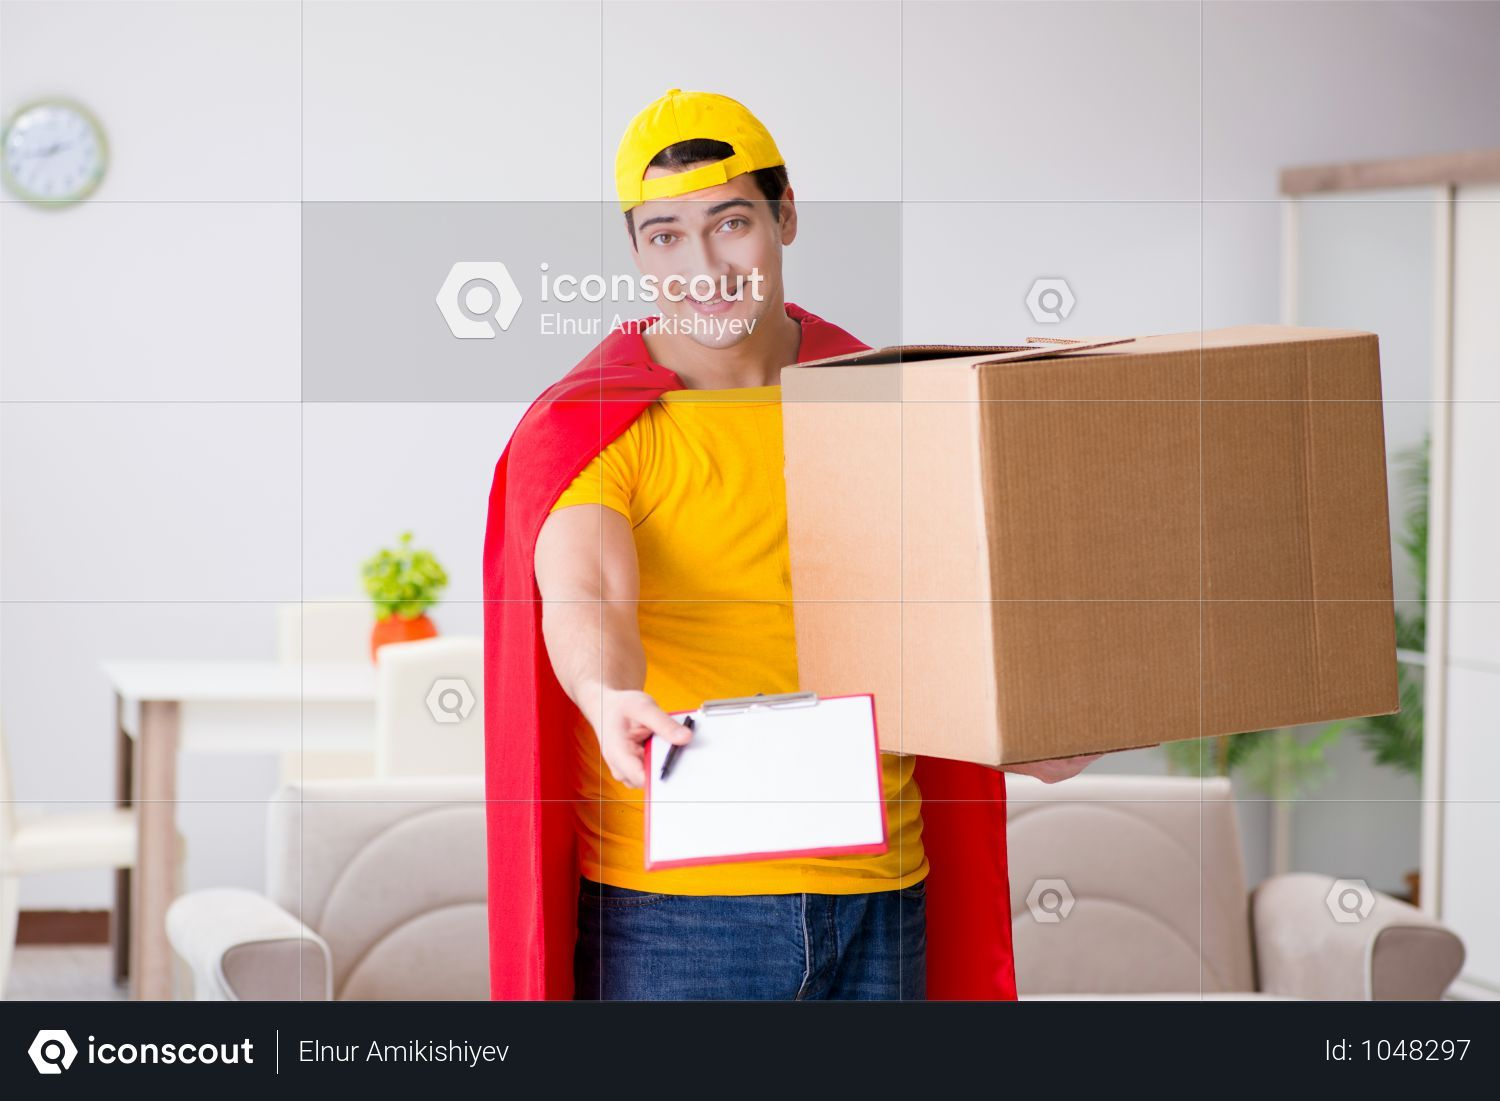 Premium Superhero Delivery Guy With Box Photo Download In Png Jpg Format Delivery Photos Superhero Guys